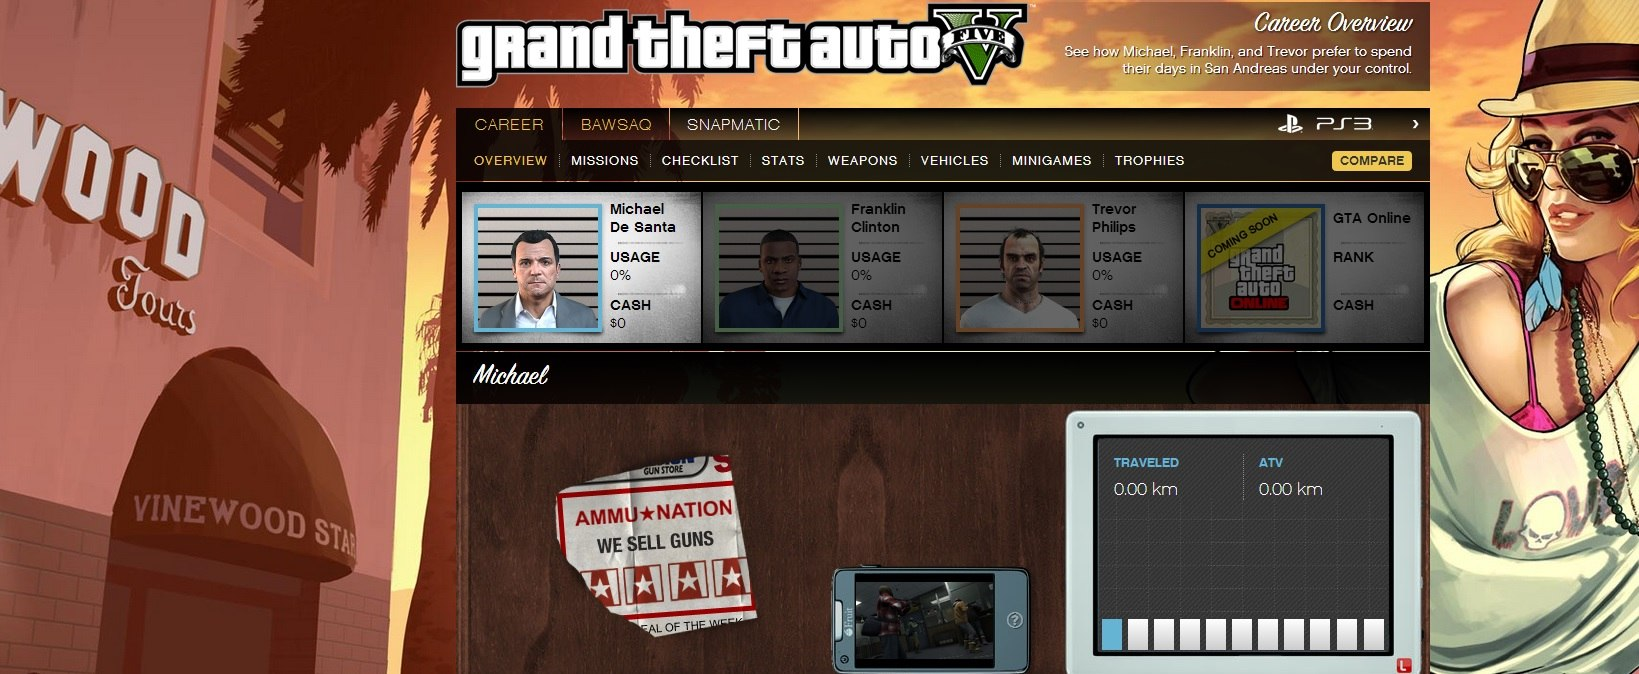 Download rockstar social club for windows 7 - Metabliss ...